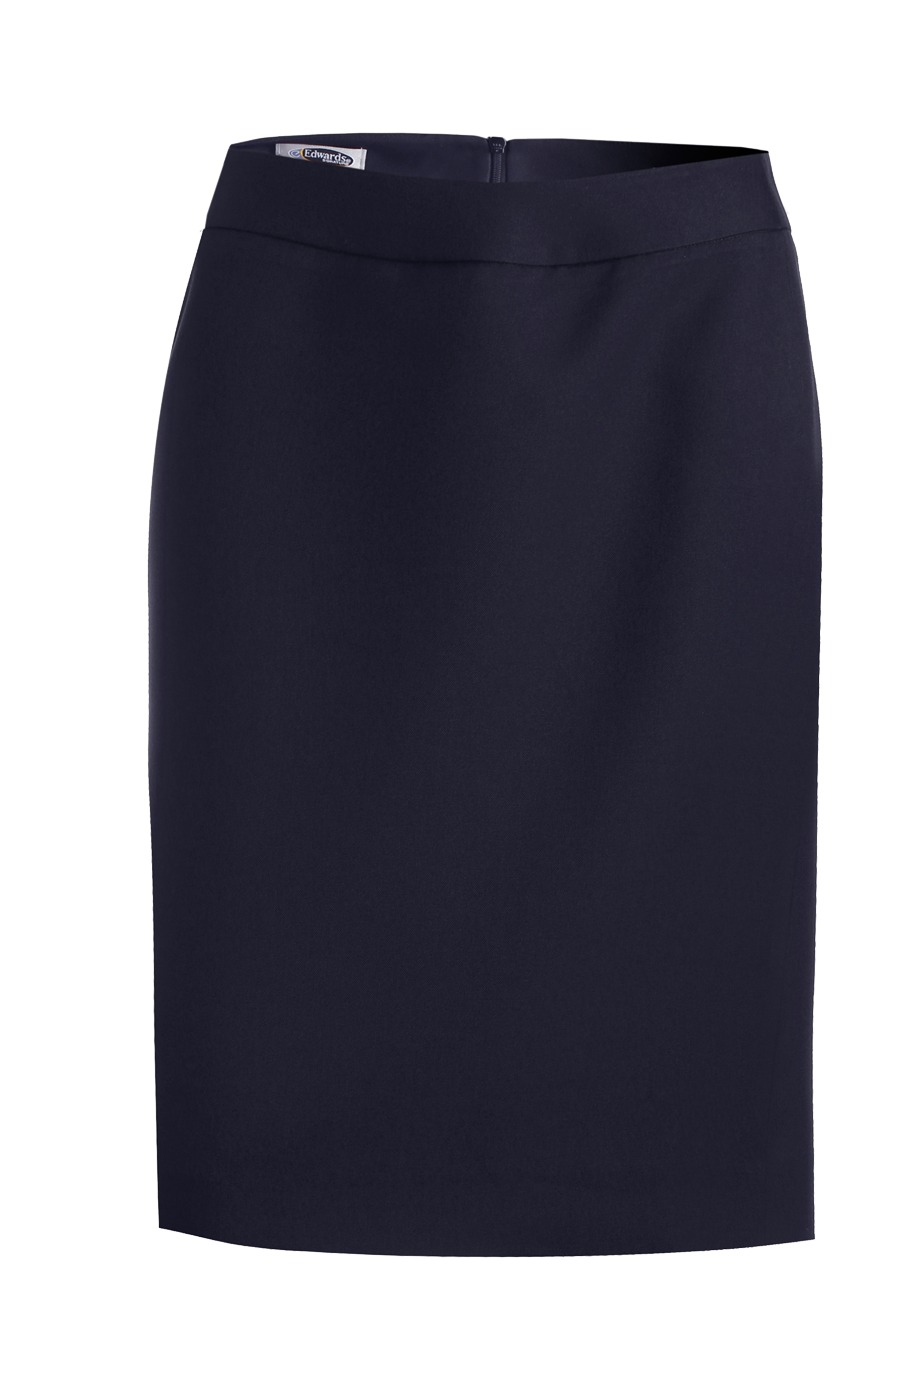 Edwards Garment 9725 Synergy Washable Skirt